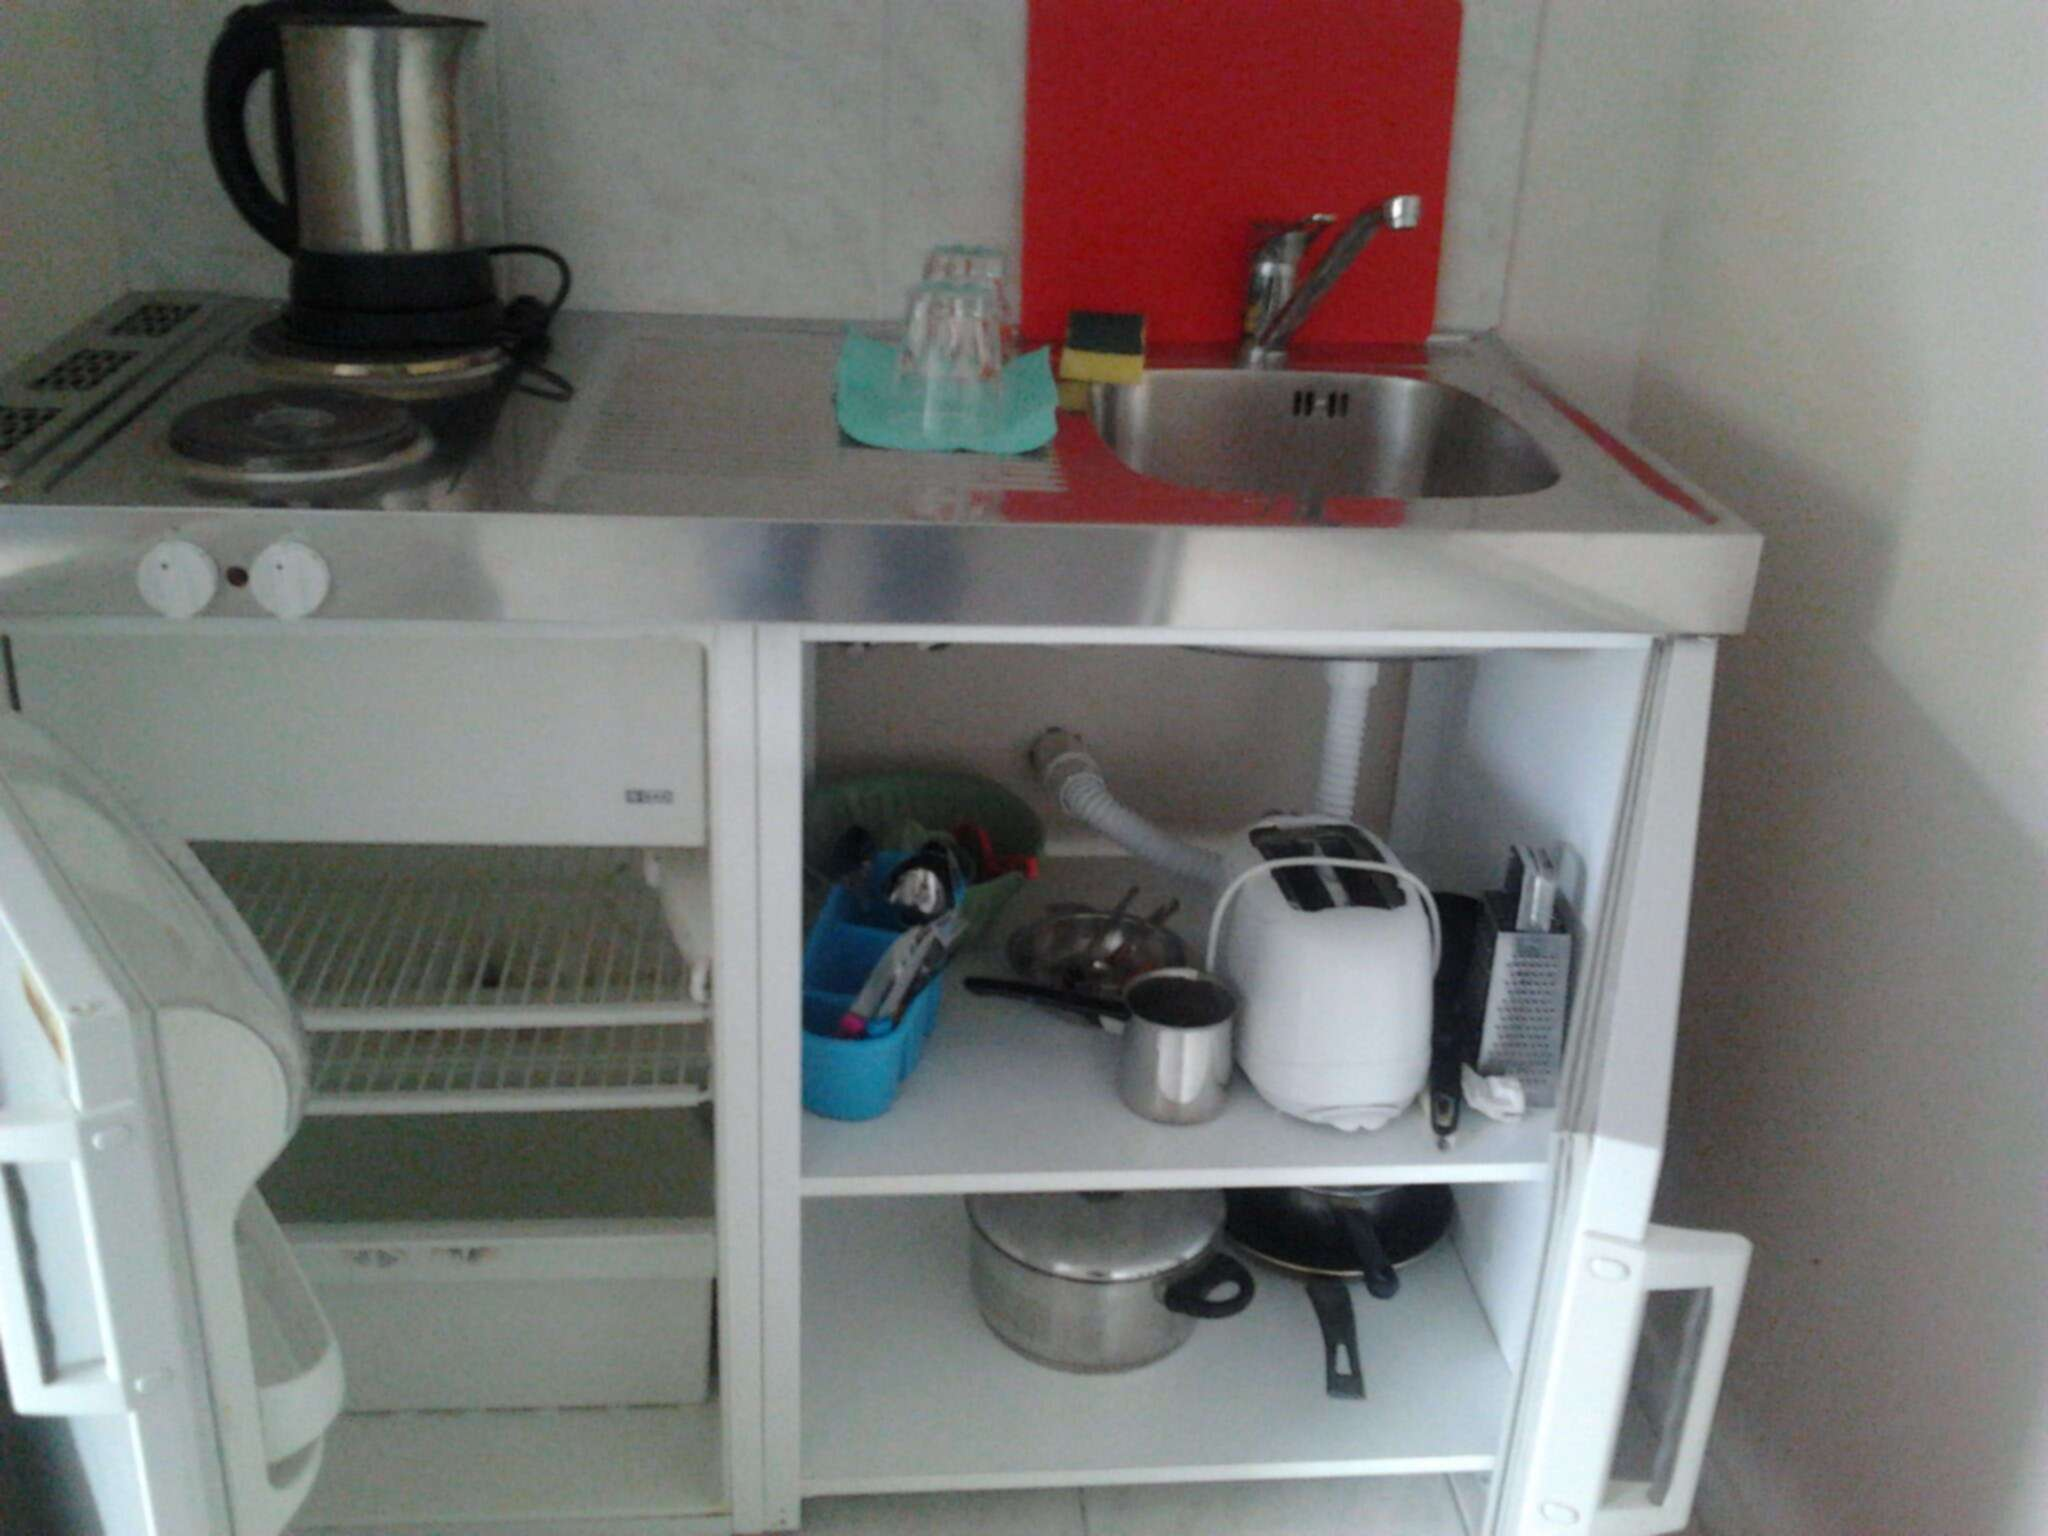 portable kitchen cabinets for small apartments ... image of portable kitchen cabinets for small ... TSHYNBE